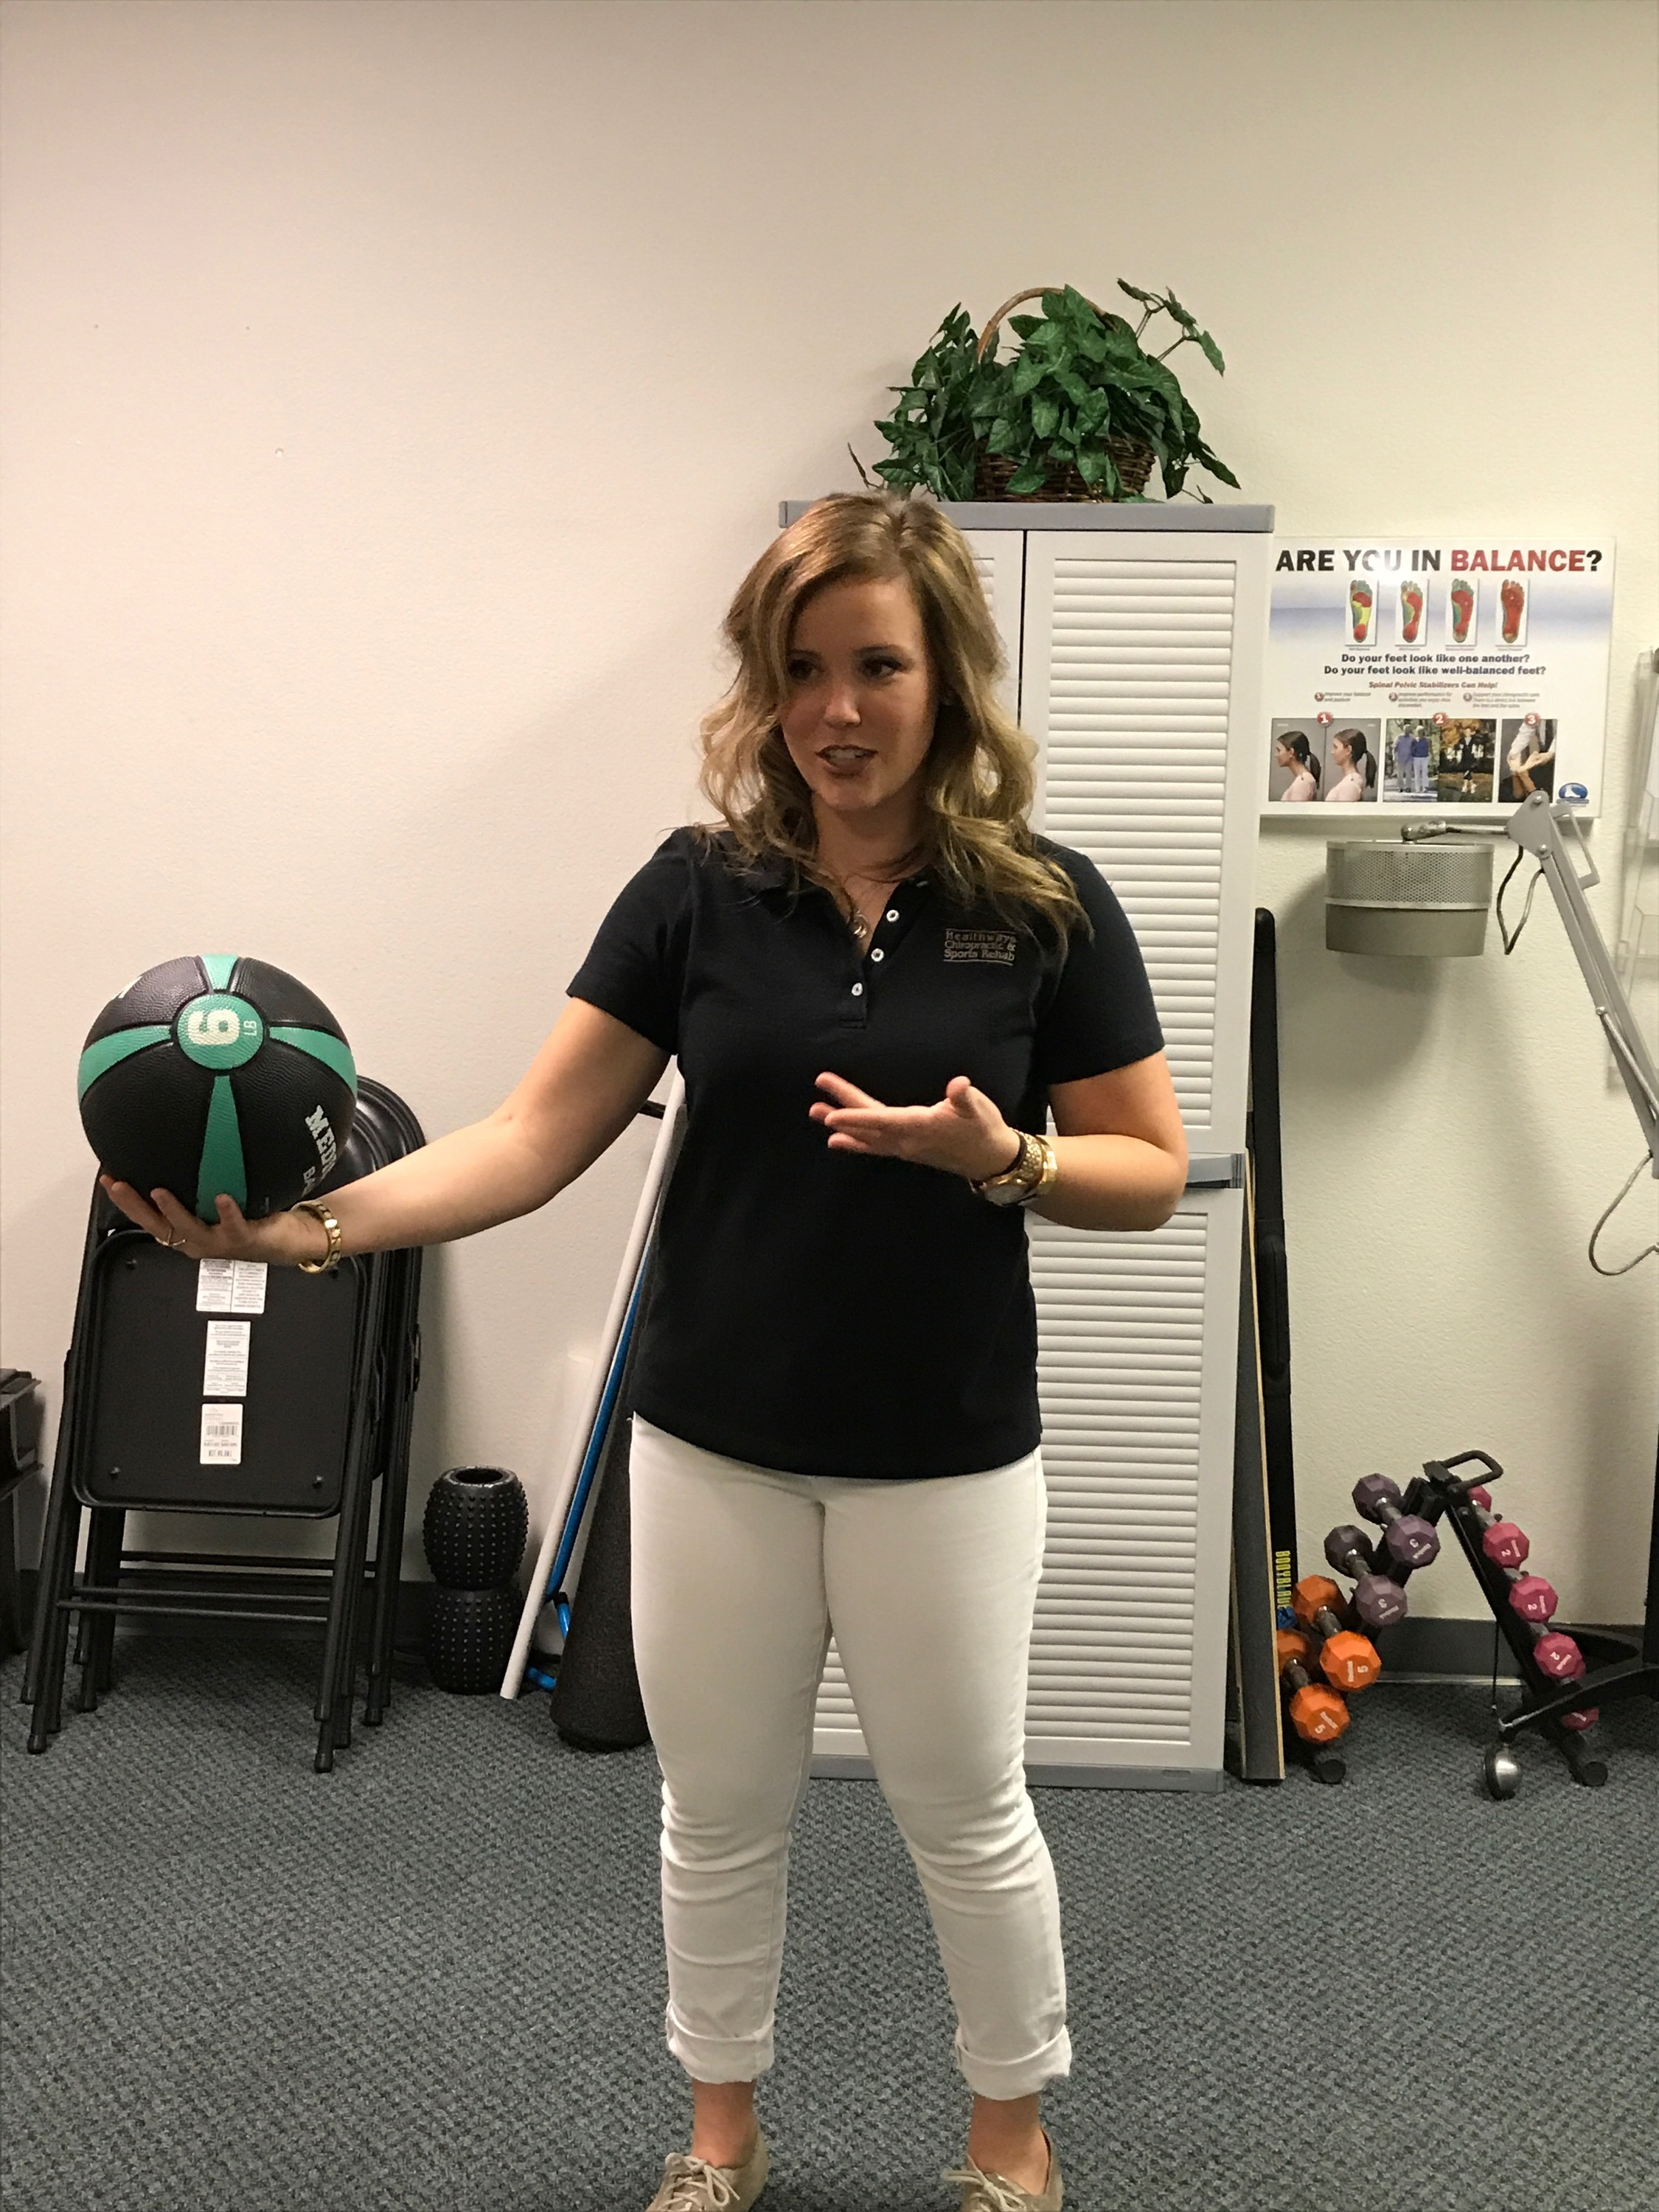 Posture Class:  Mom was right when she told you to stand up straight! Dr. Andrea using a medicine ball to demonstrate the importance of spinal biomechanics that are affected by poor posture.